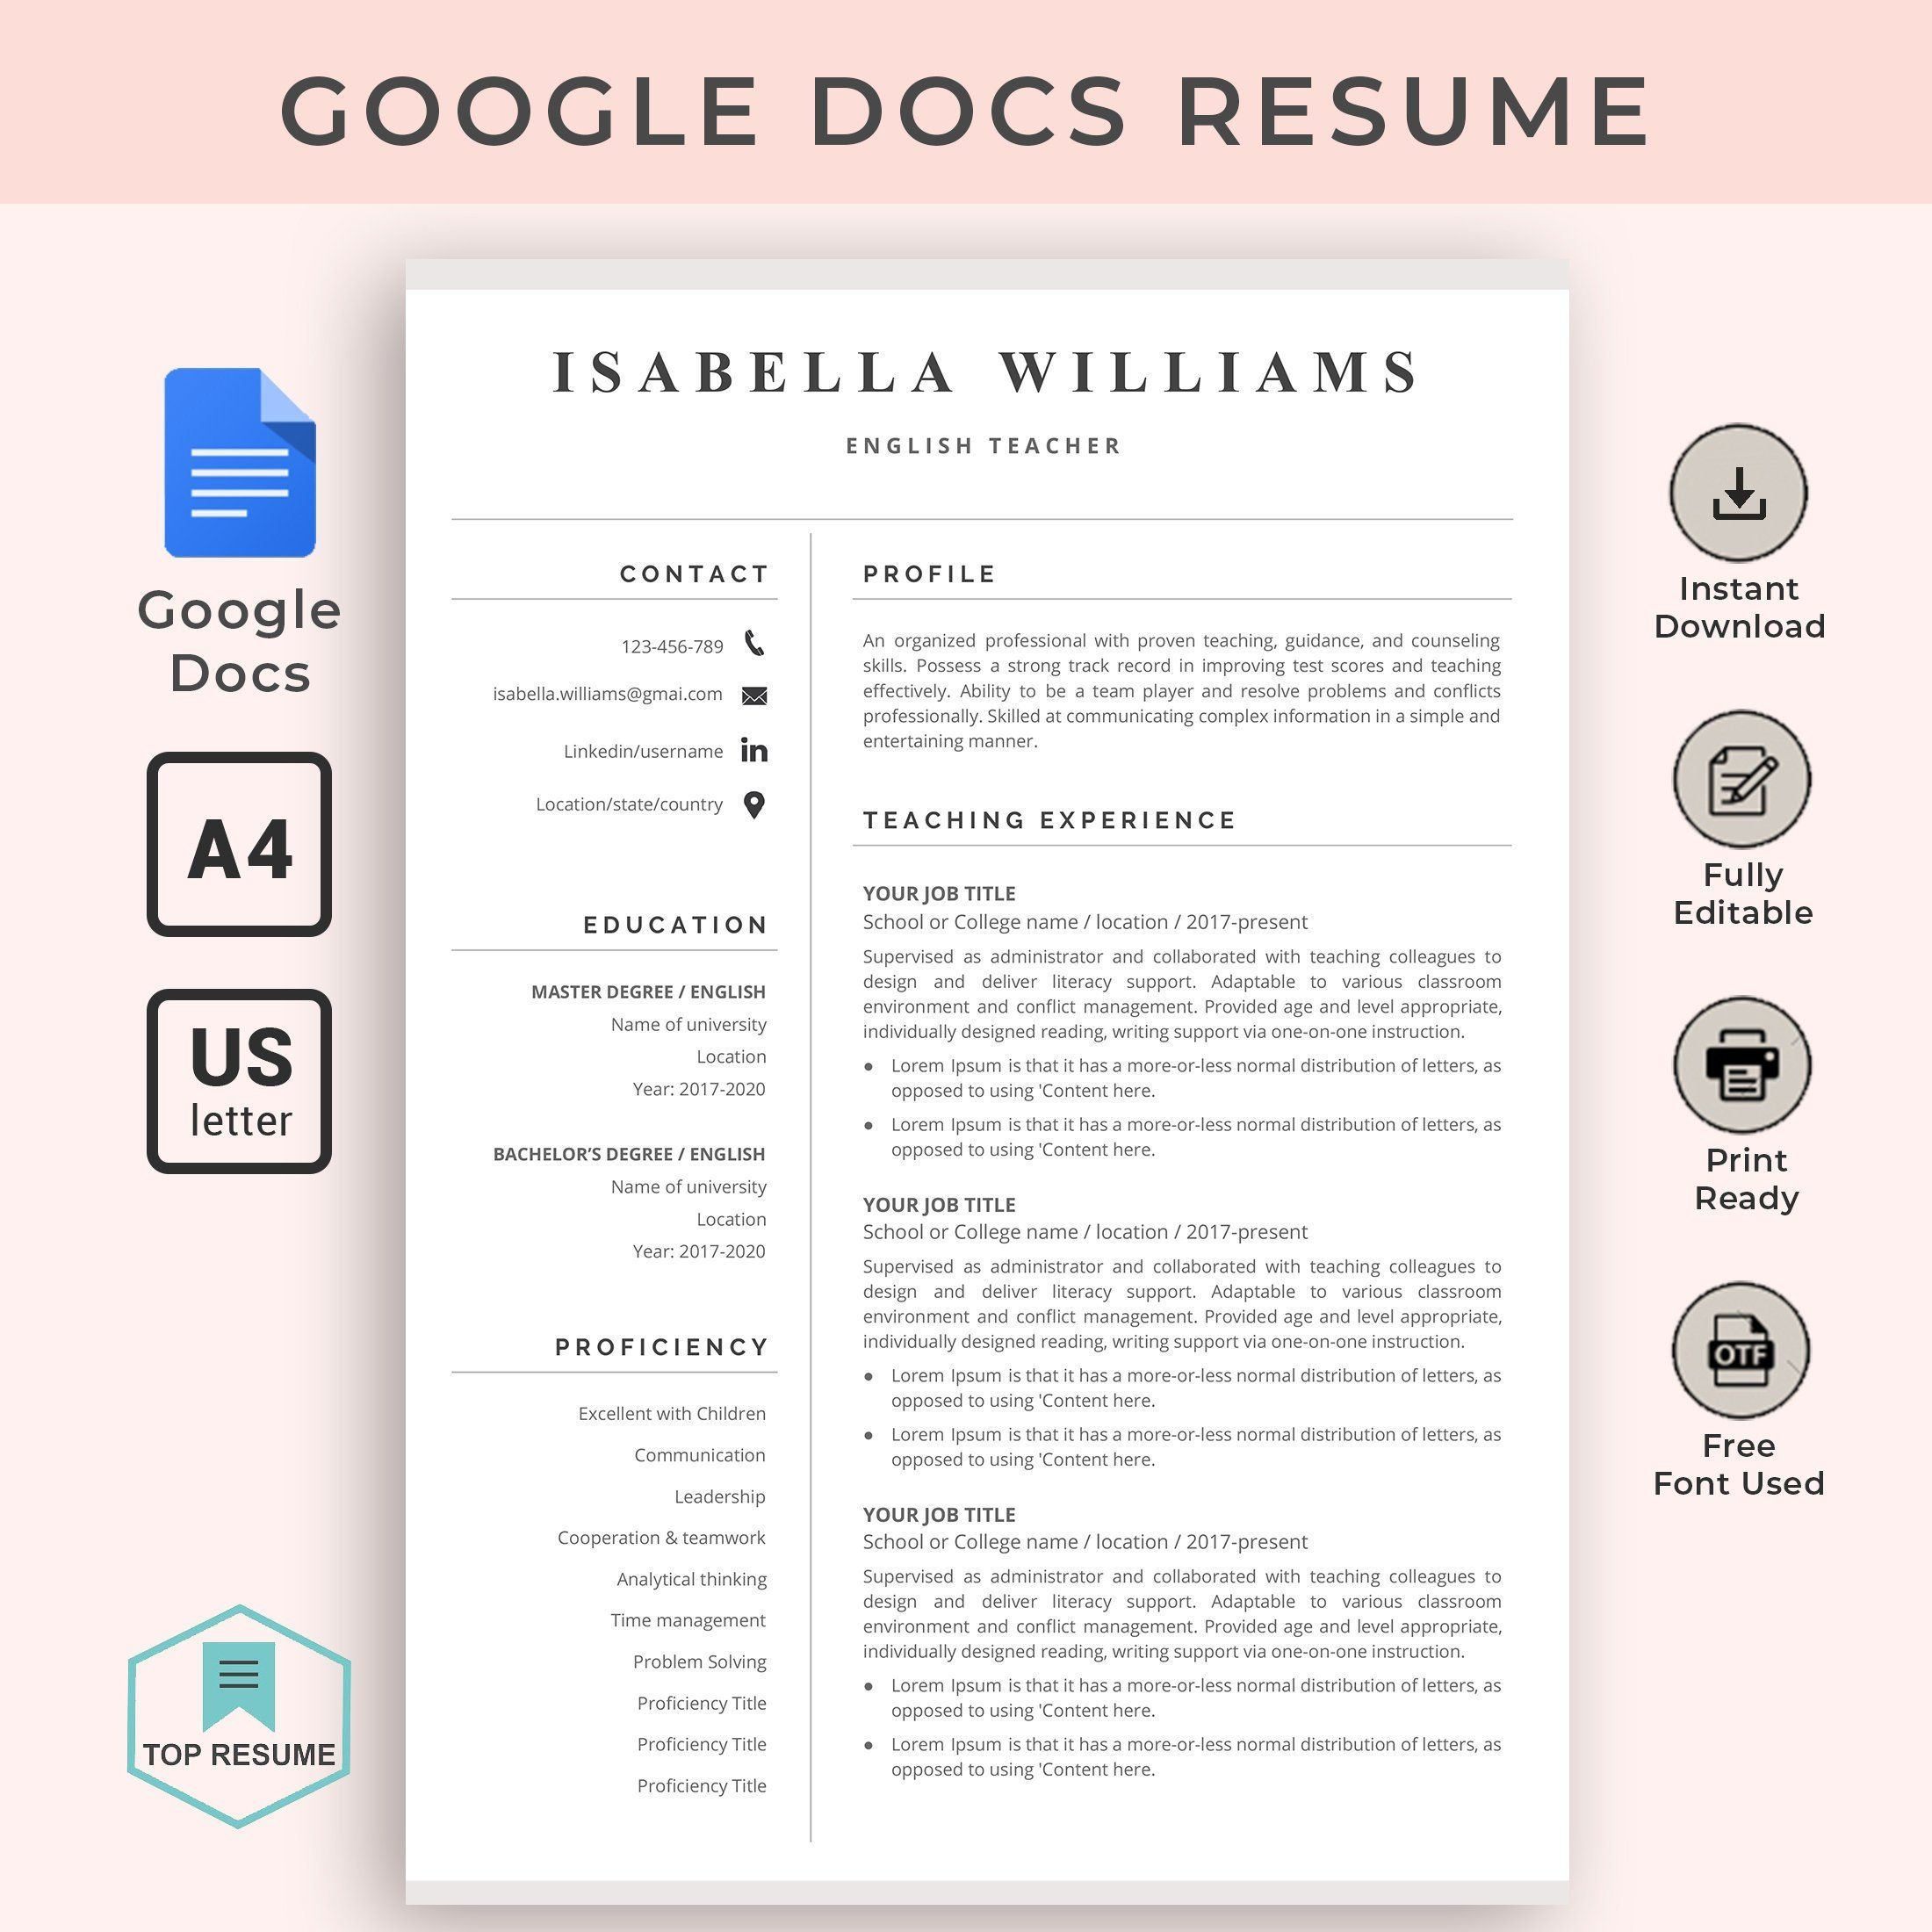 Google Docs Resume Google Docs Resume Template Teacher Resume